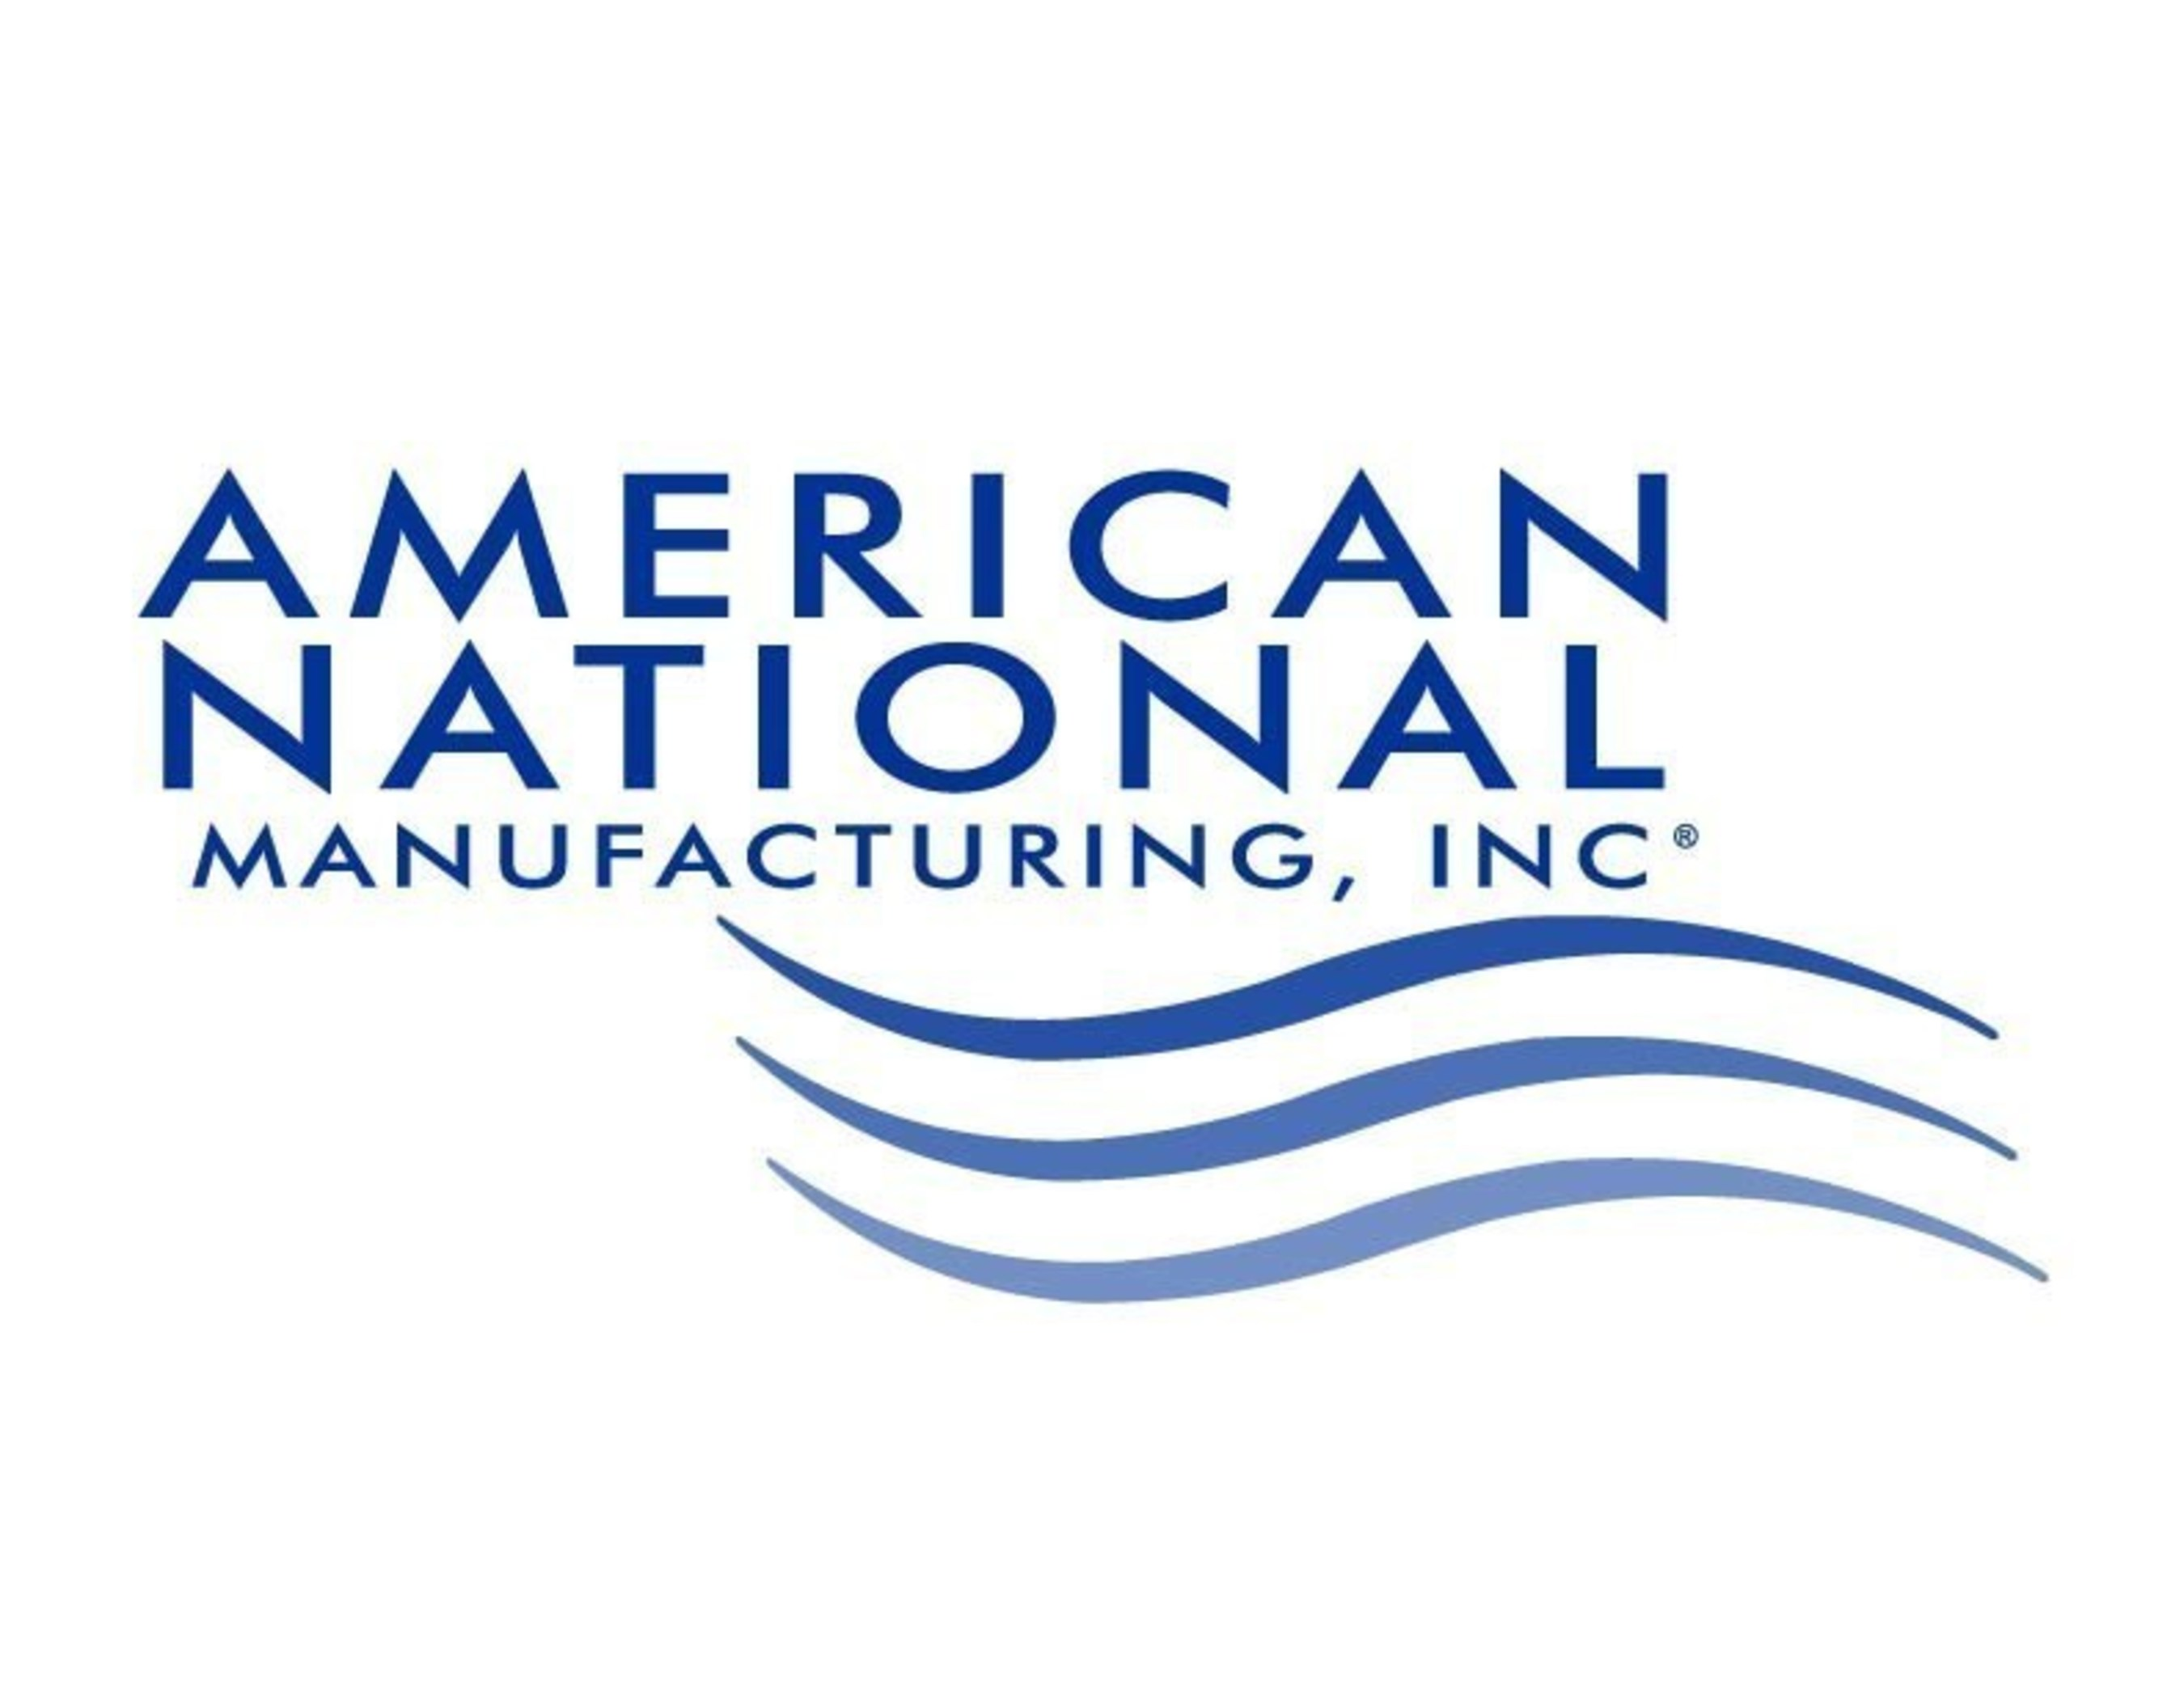 American National Manufacturing